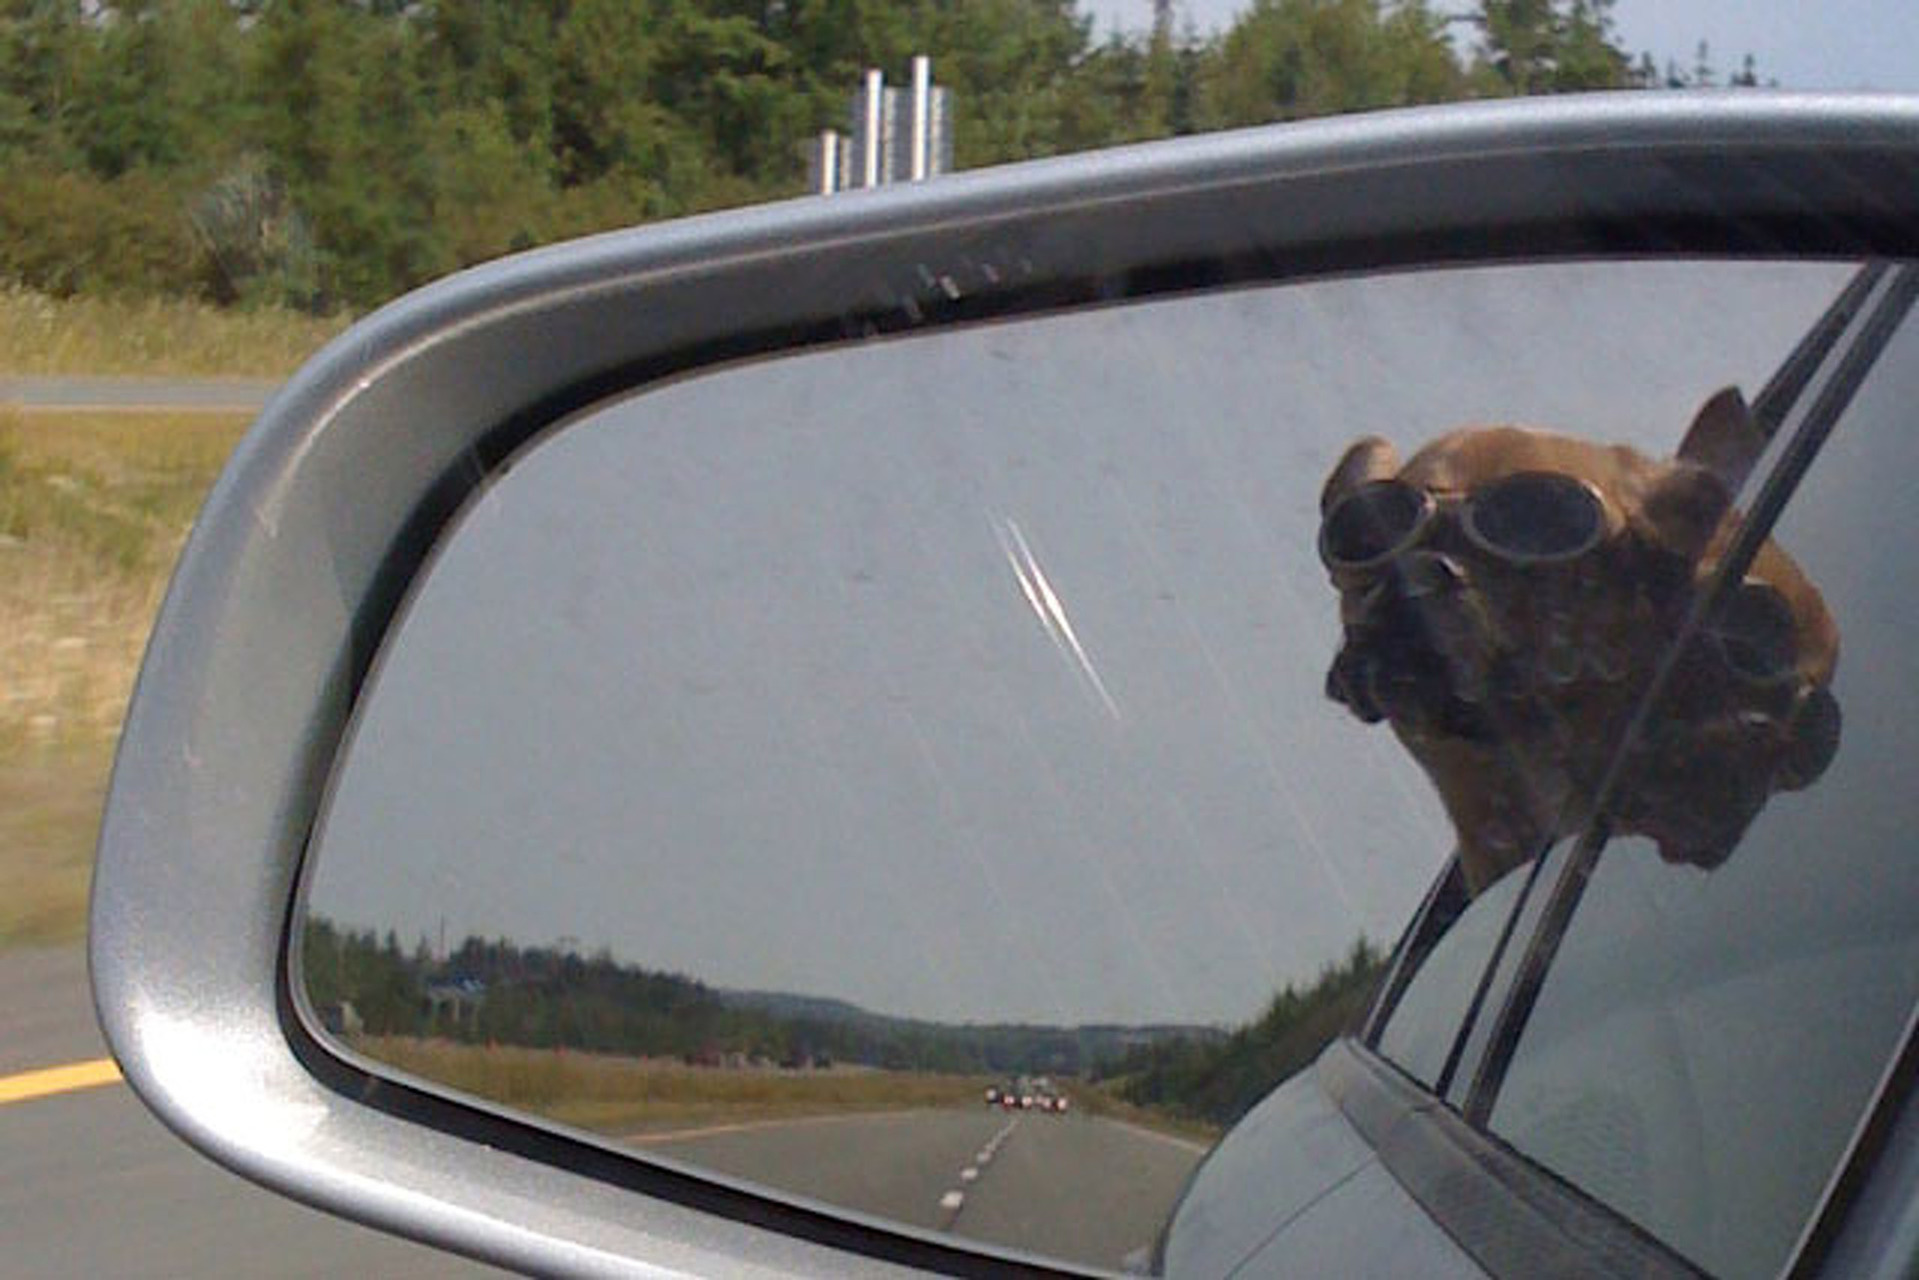 Why put your dog on the Roof like Mitt Romney did, when he can Ride in STYLE